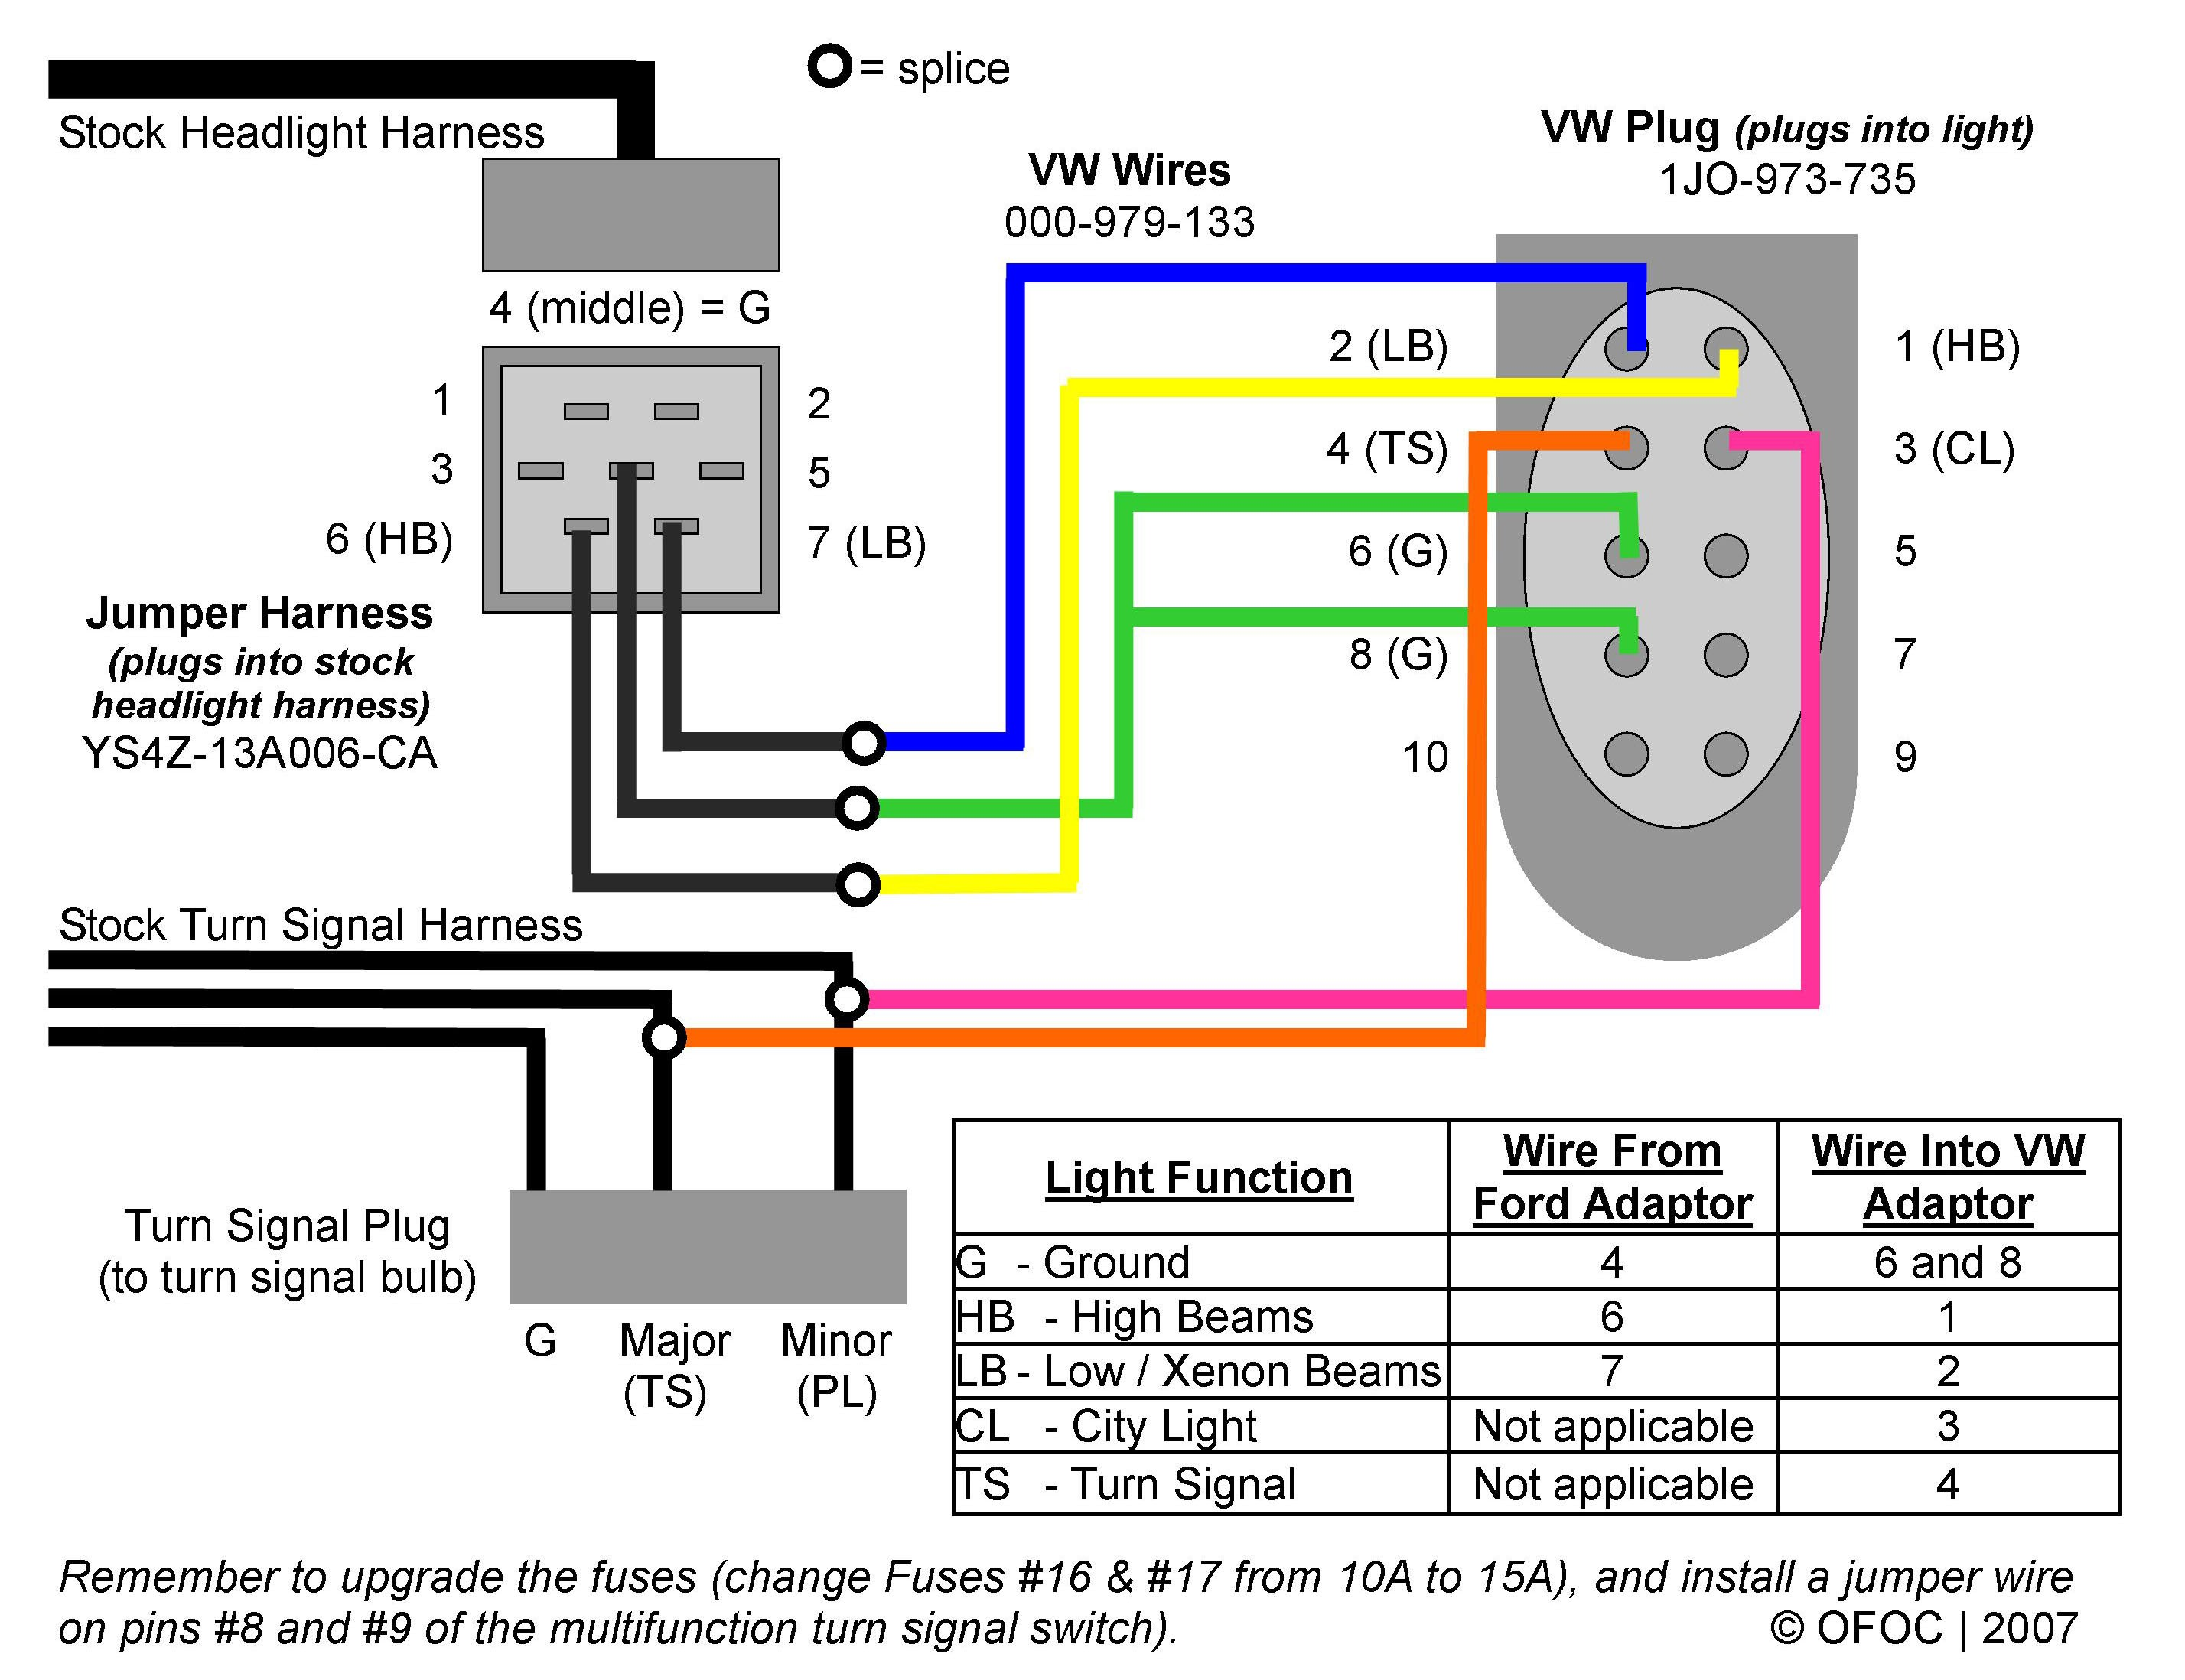 Golf R Fuse Diagram Wiring Library Vw Mk4 Engine 5 Location And